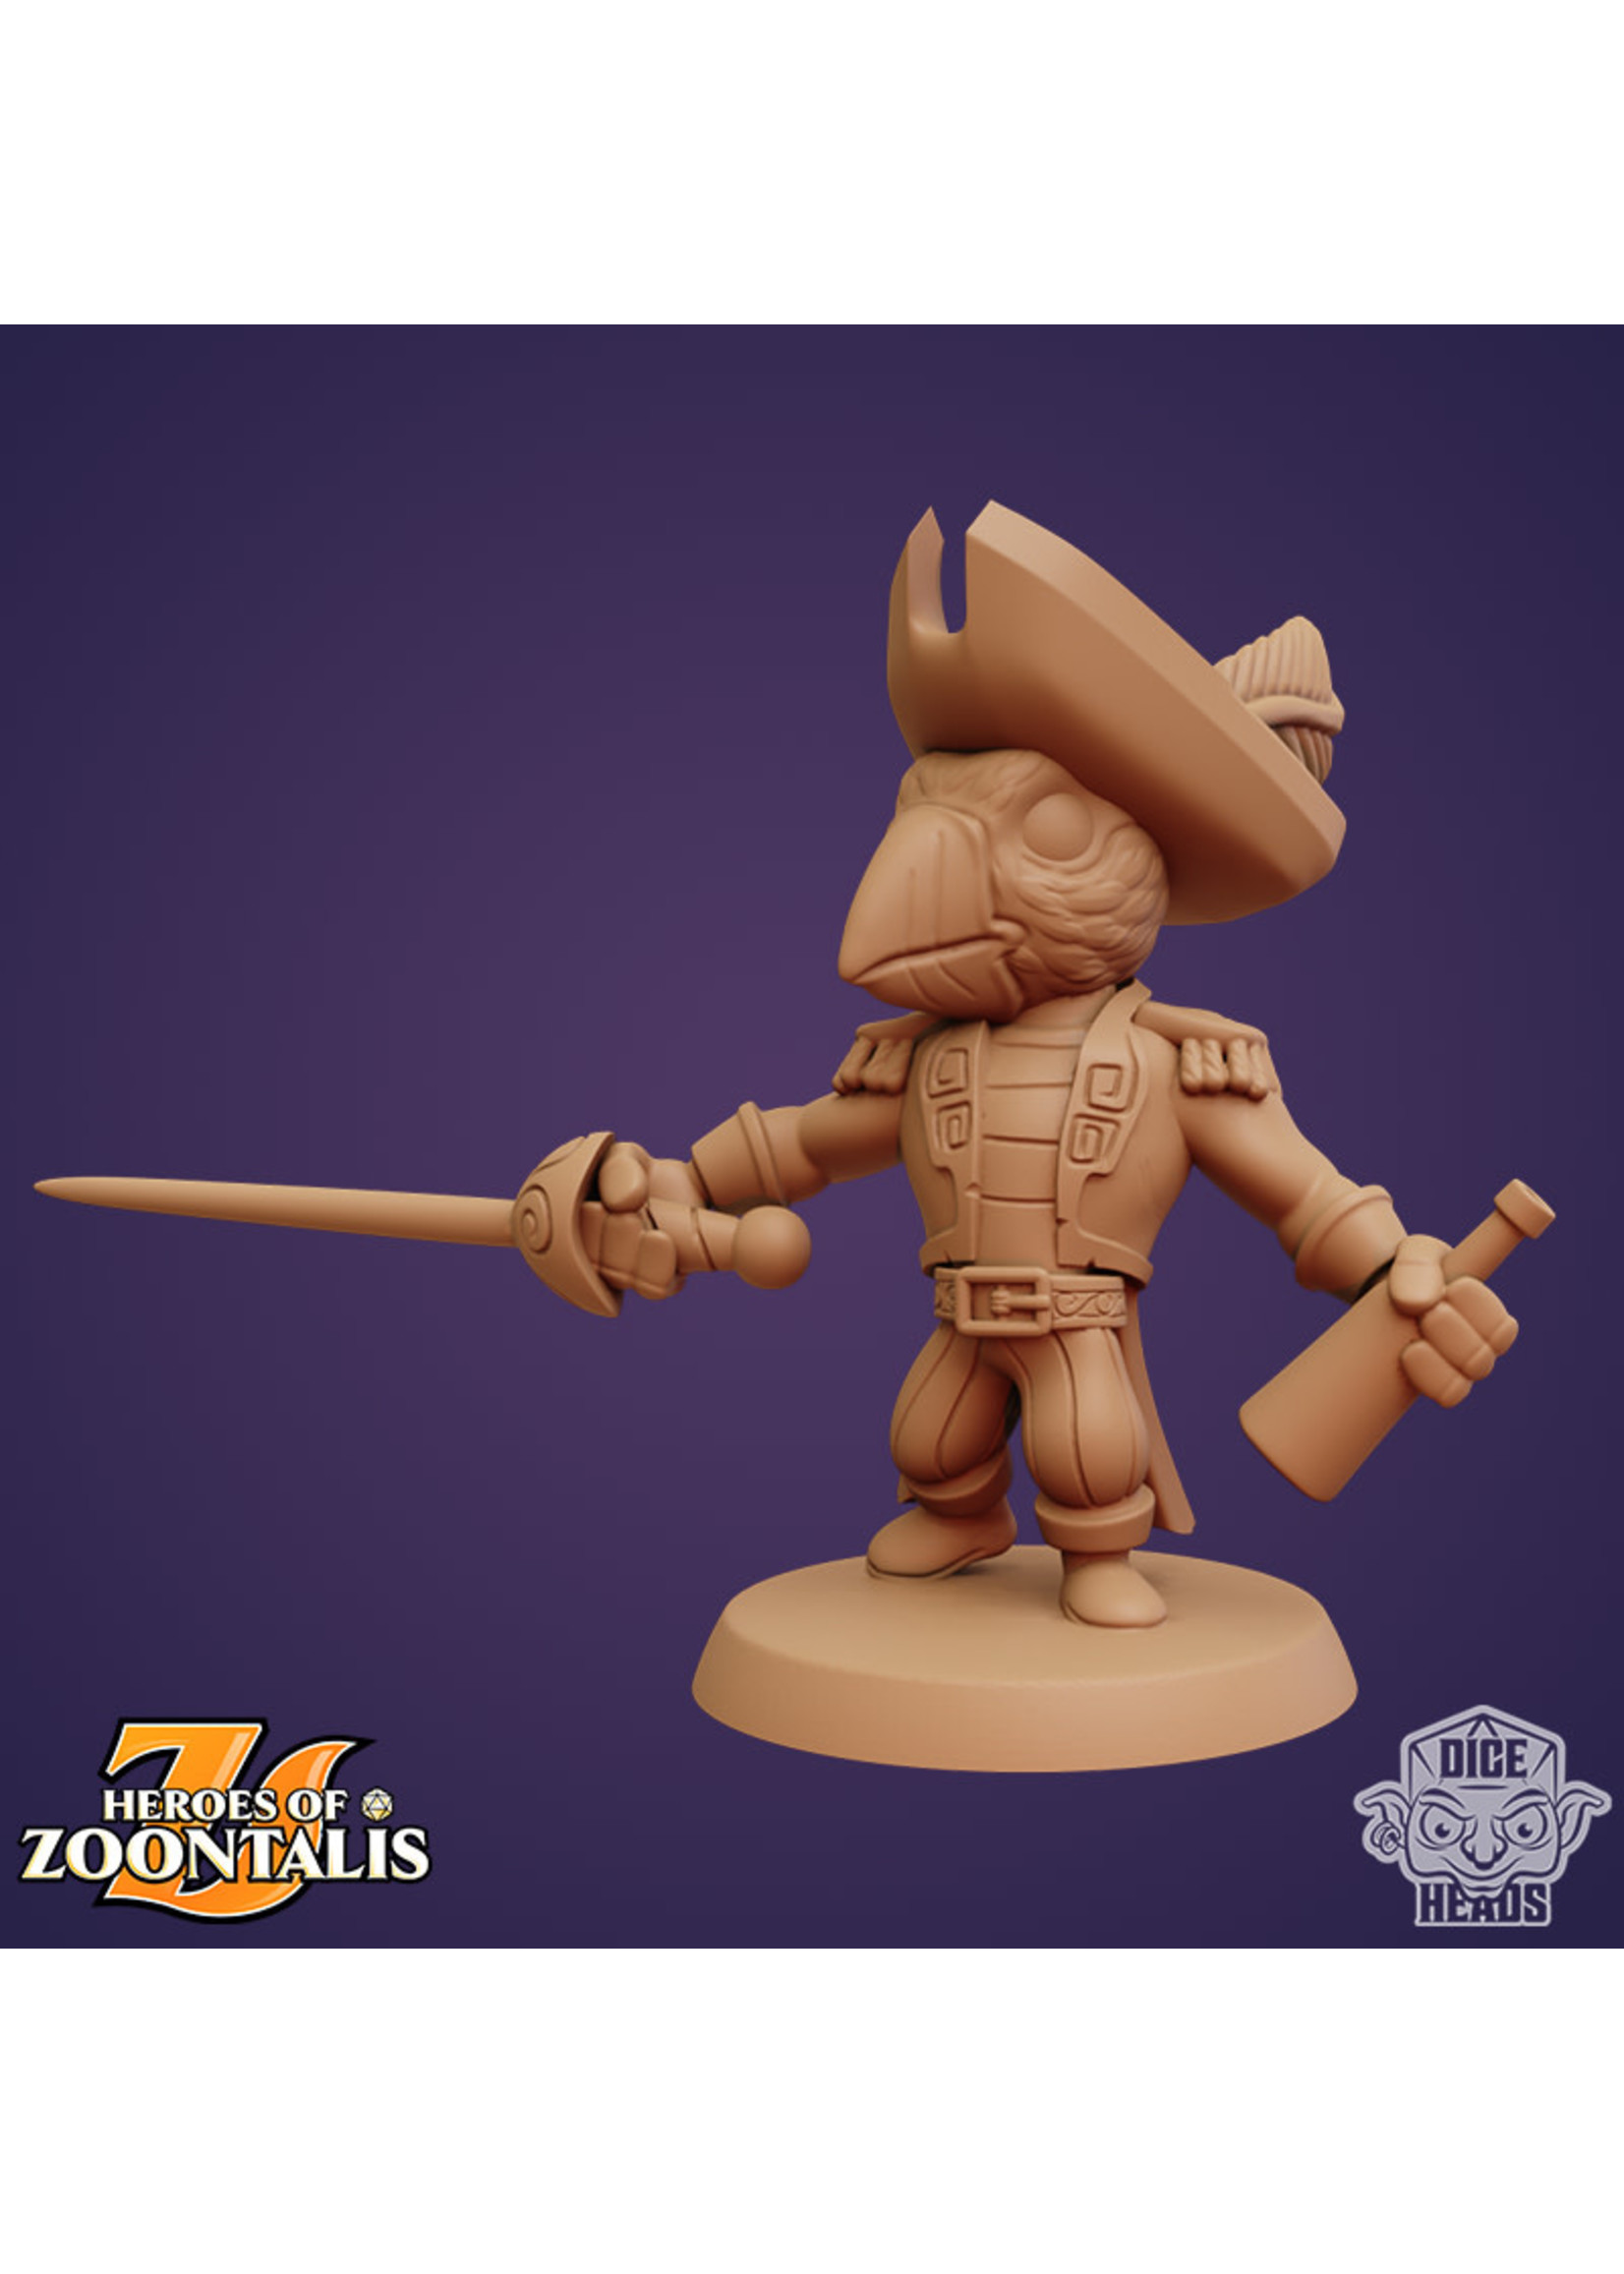 3D Printed Miniature - Puffin Swashbuckler - Dungeons & Dragons - Zoontalis KS